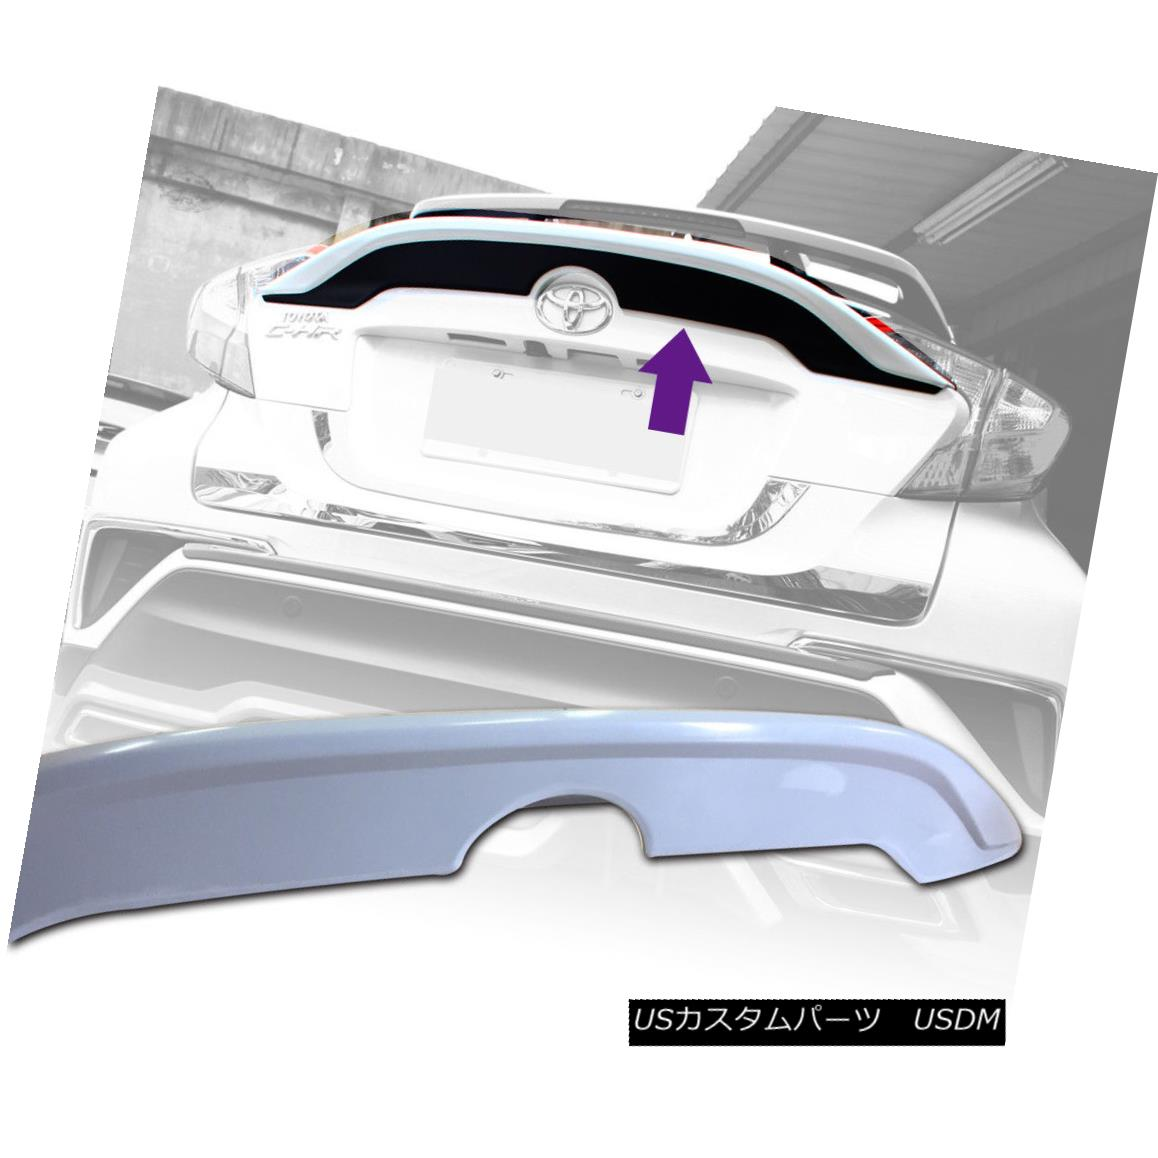 エアロパーツ Painted ABS For TOYOTA C-HR CHR SUV 5DR B Look Trunk Spoiler 18up TOYOTA C-HR CHR SUV 5DR Bルック・トゥーク・スポイラー18up用塗装済みABS